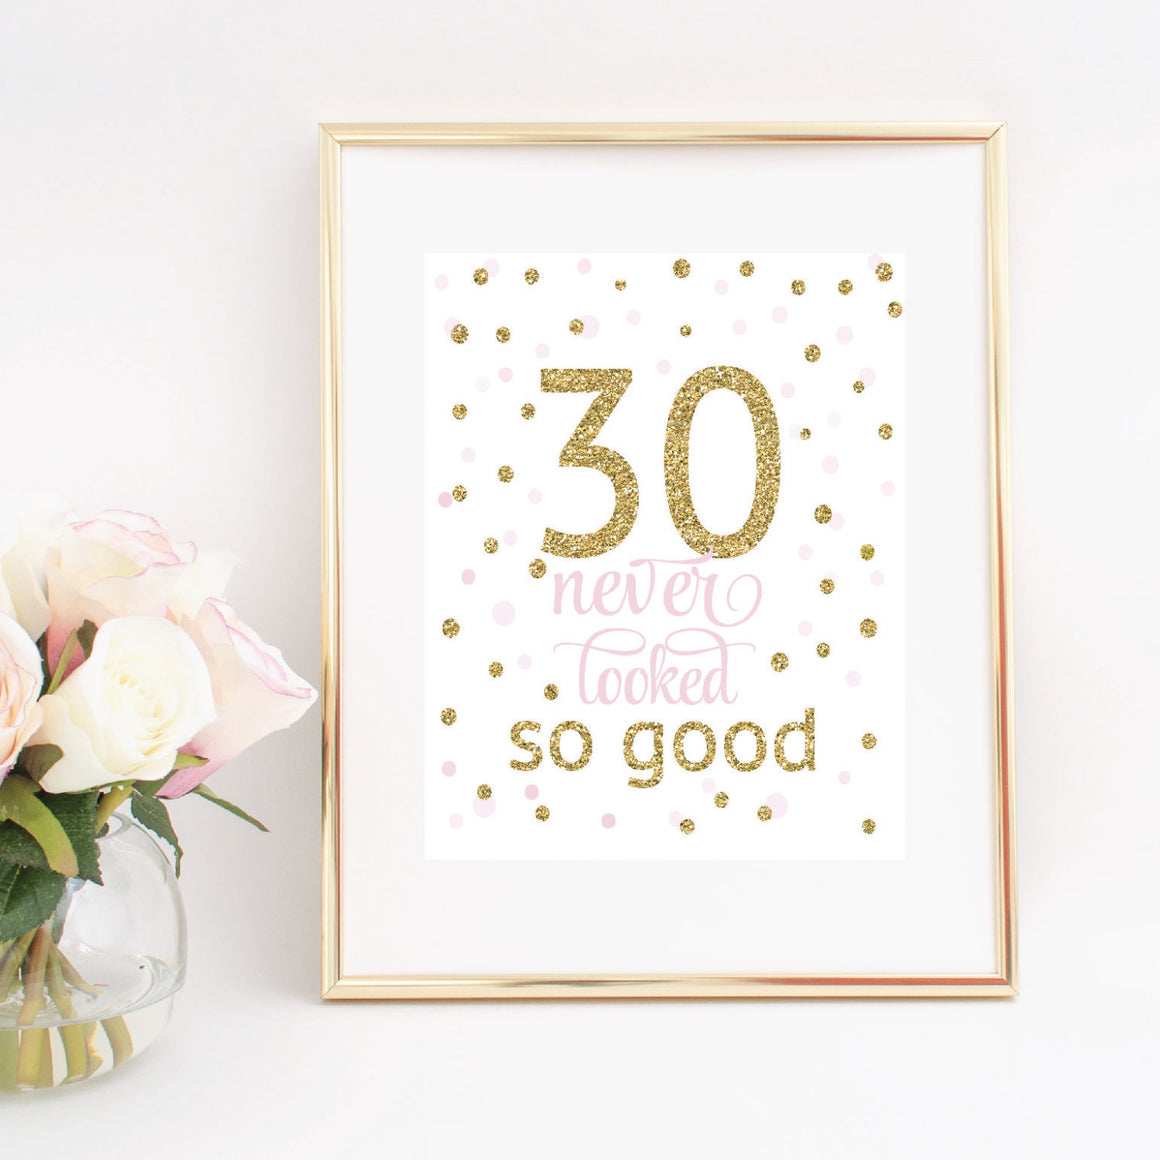 30 never looked so good digital printable download in gold frame with flowers on white background